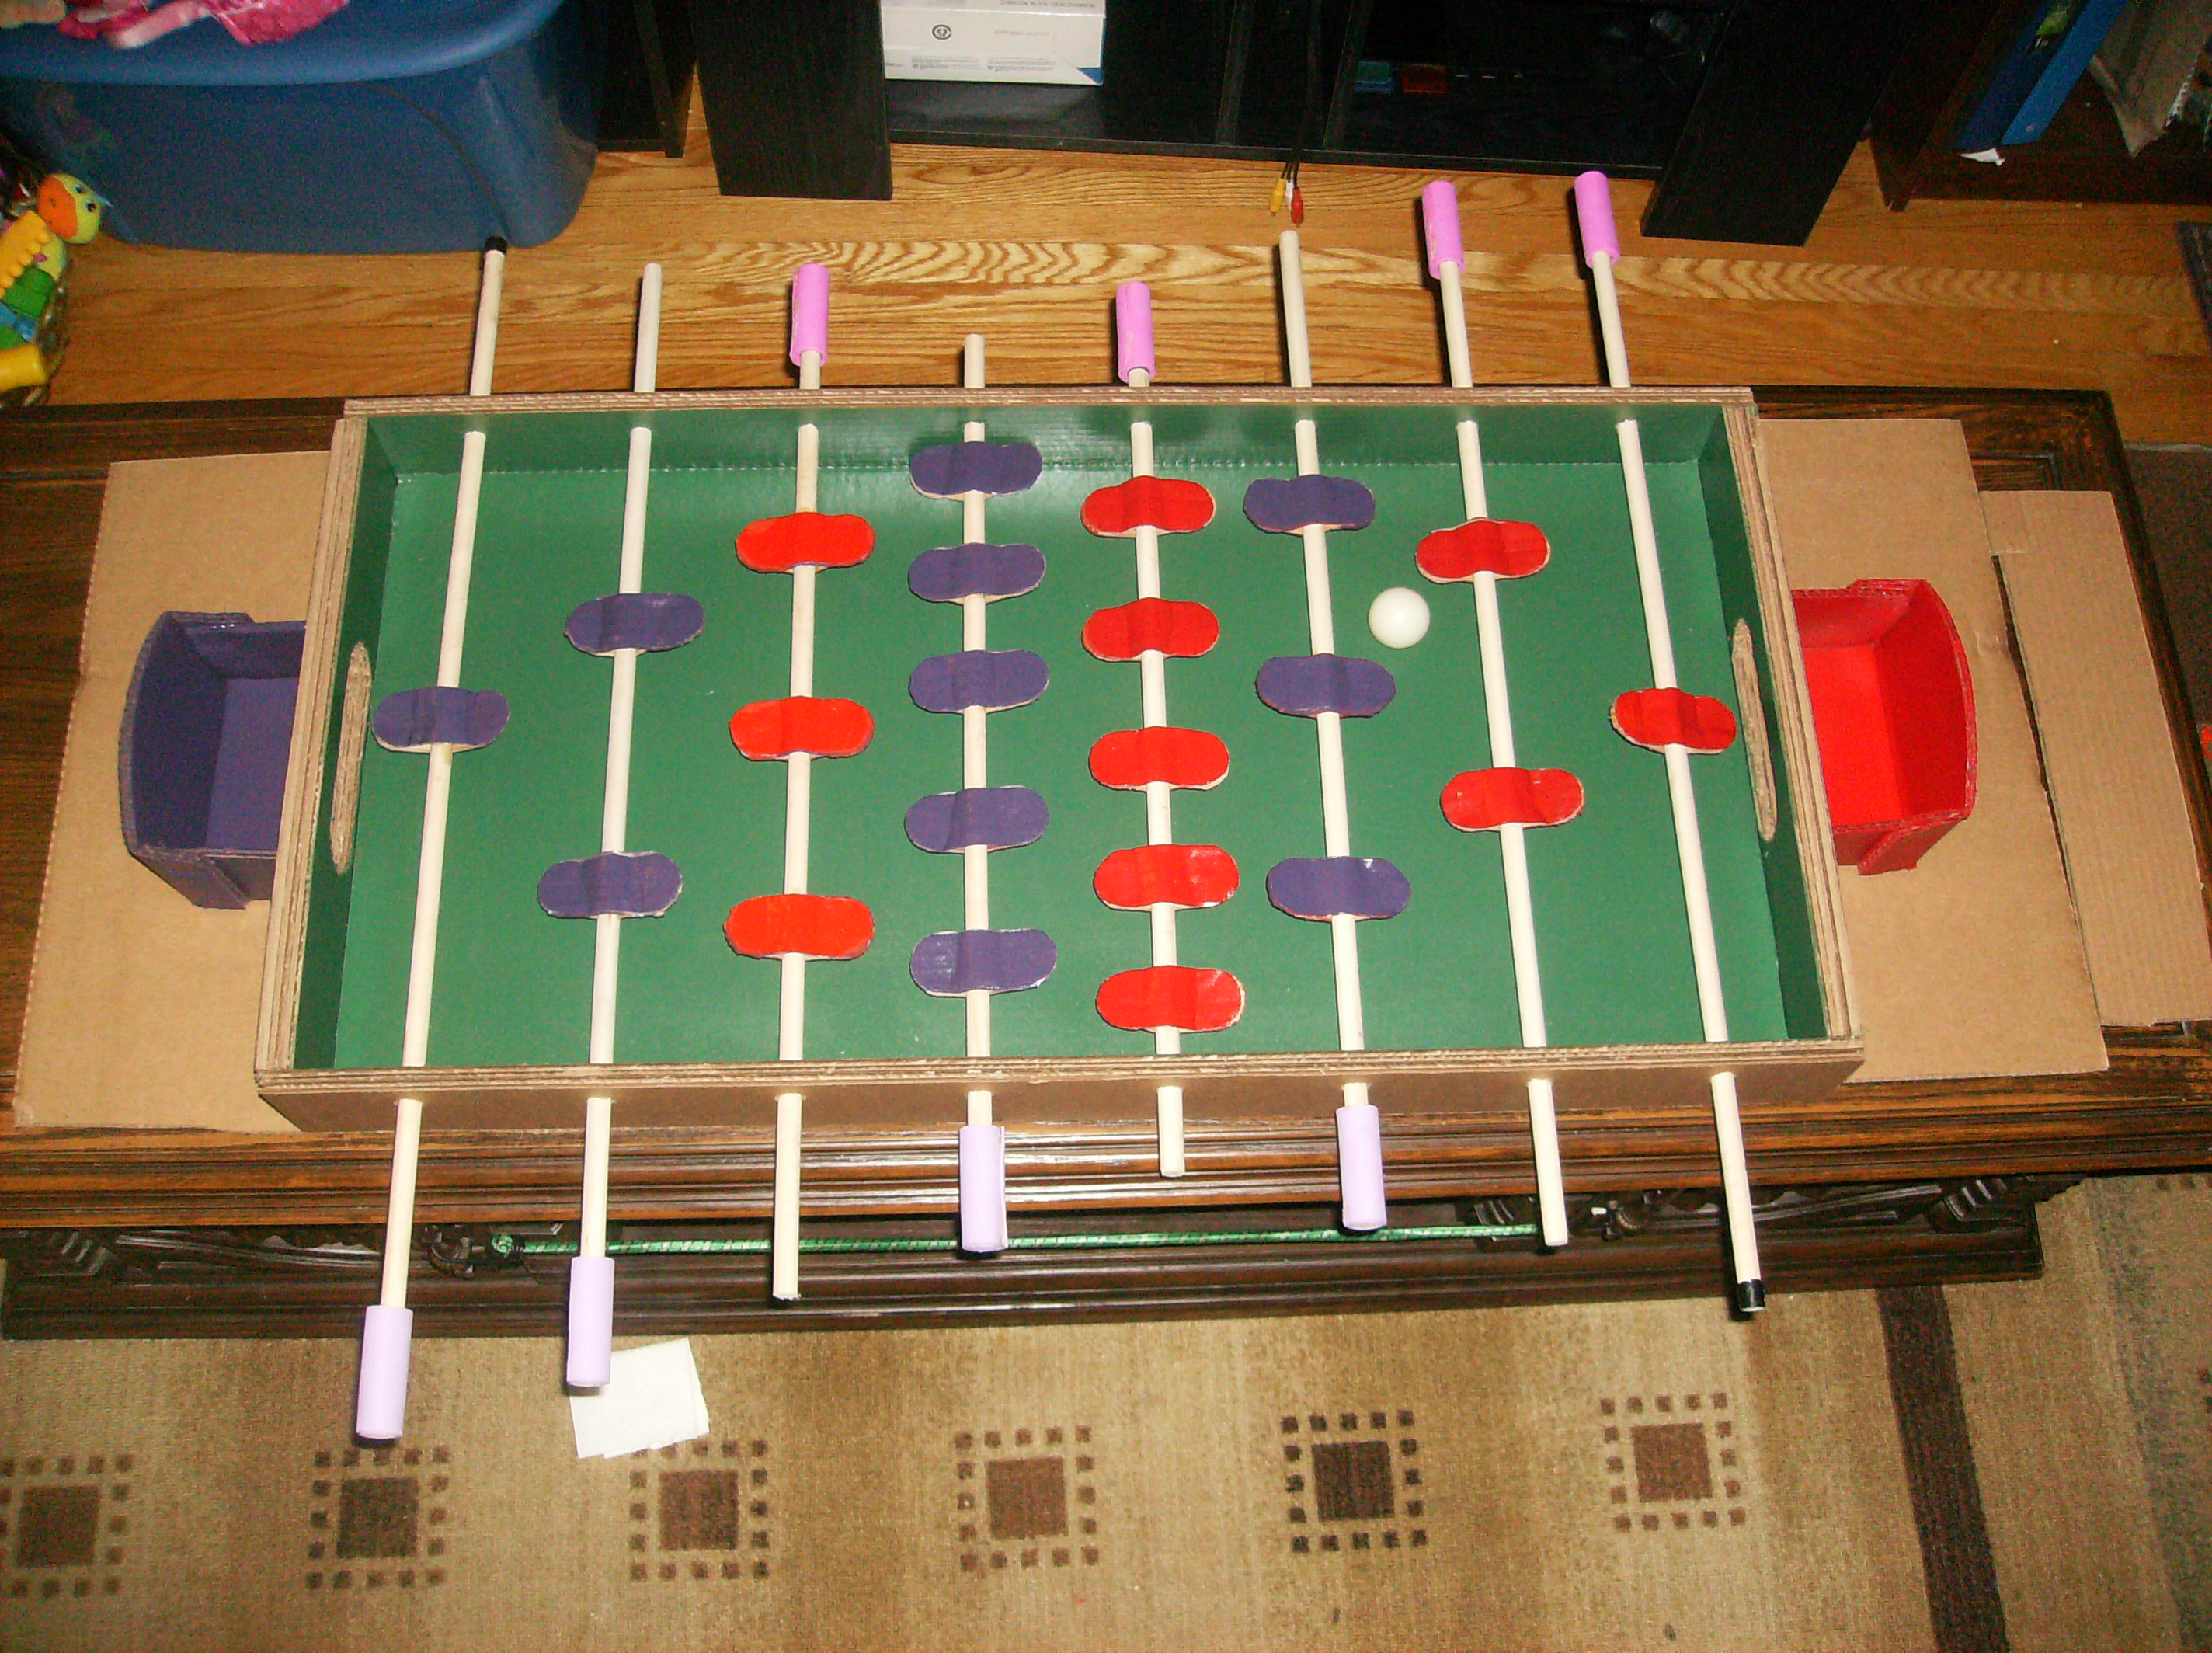 This Foosball Table Is Made Almost Entirely from Cardboard